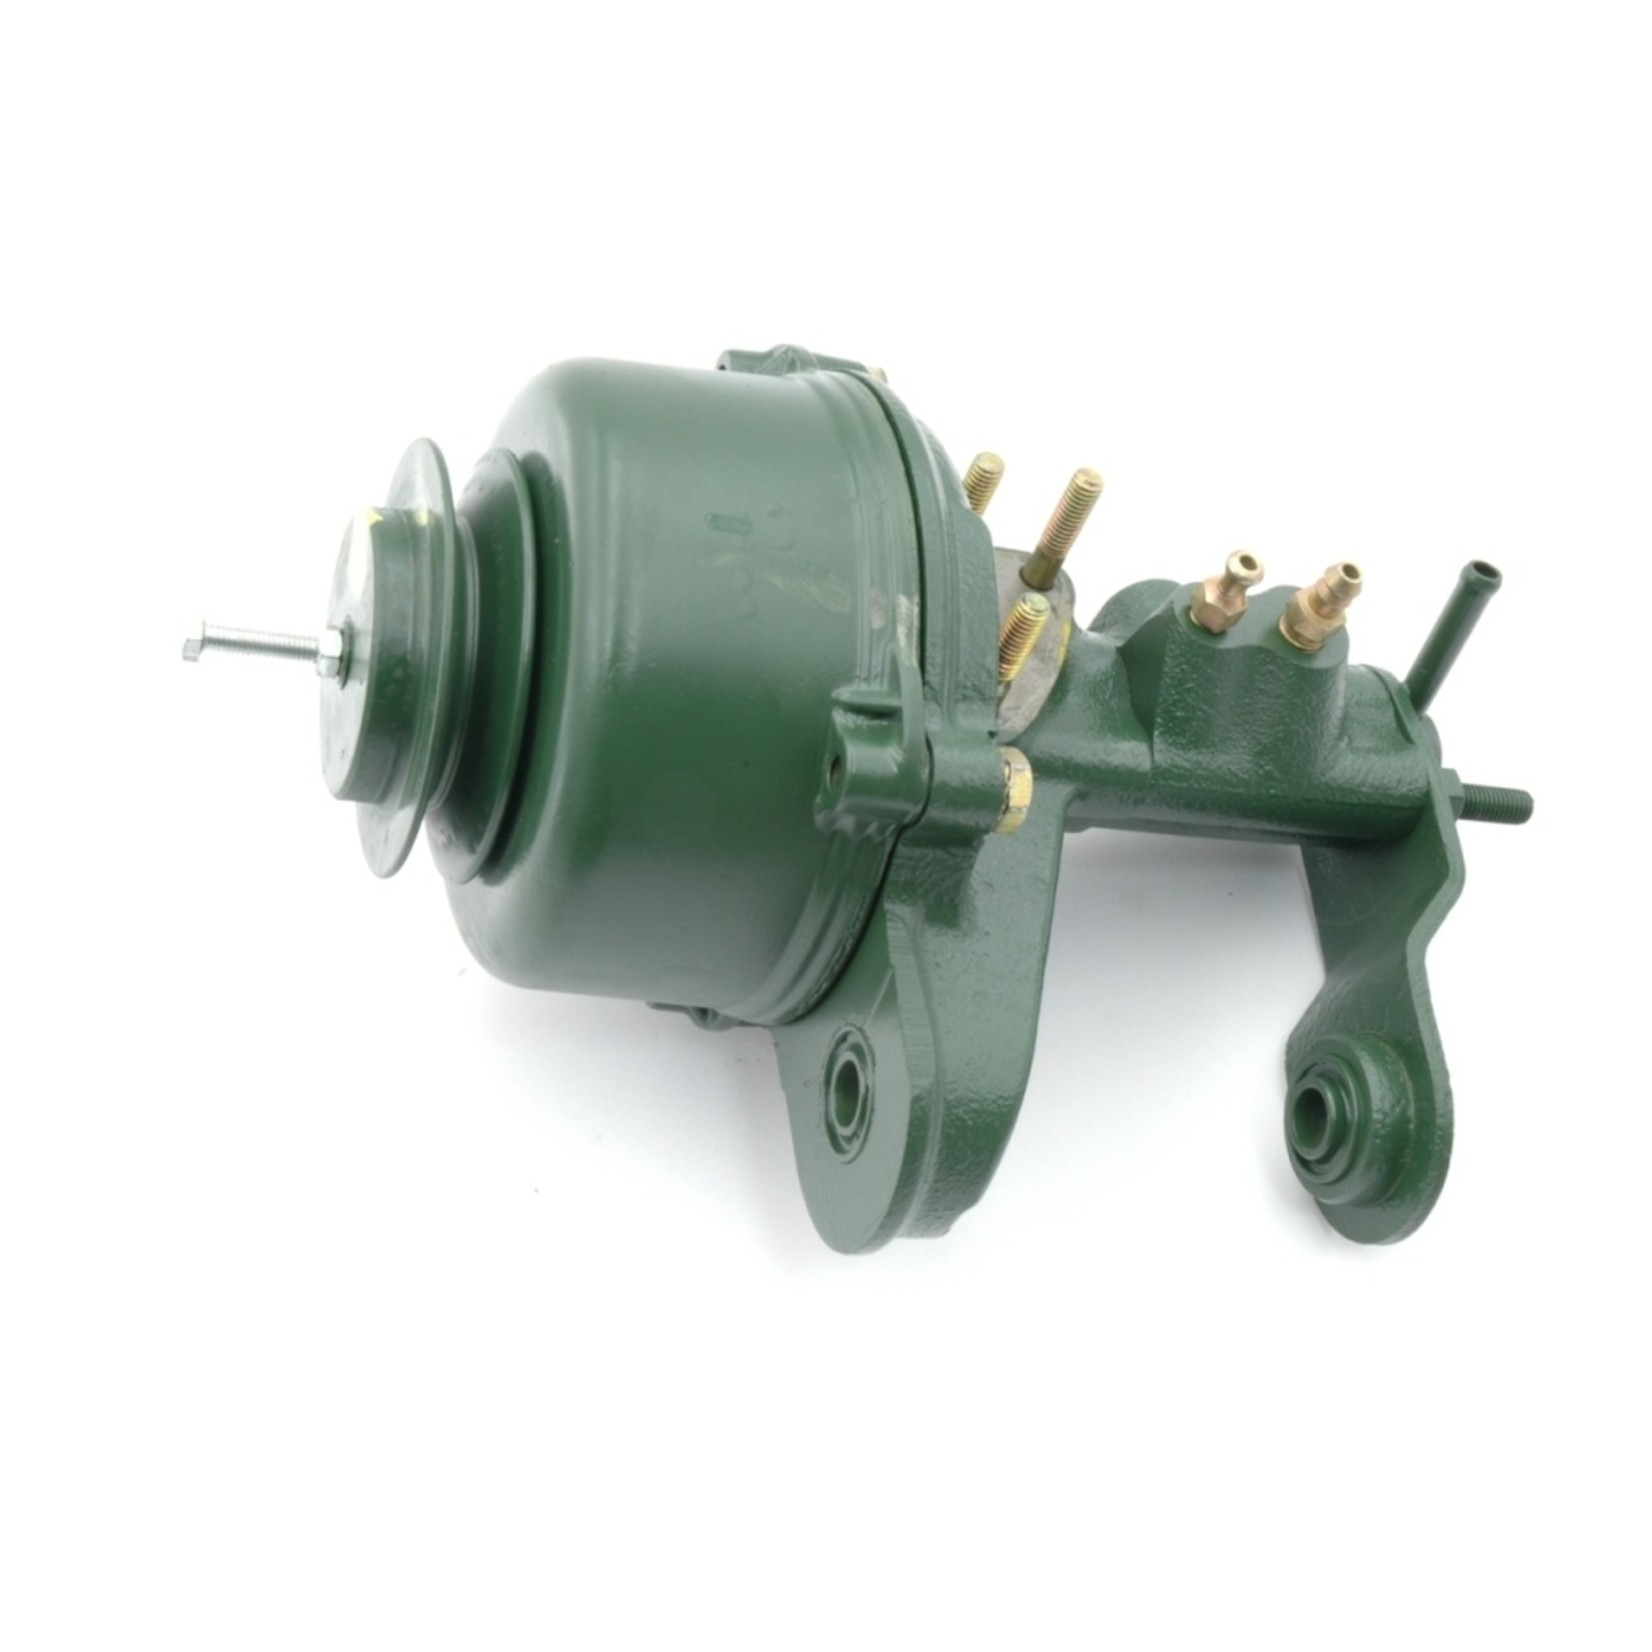 Centrifugal regulator reconditioned LHM Nr Org: DXN314029A